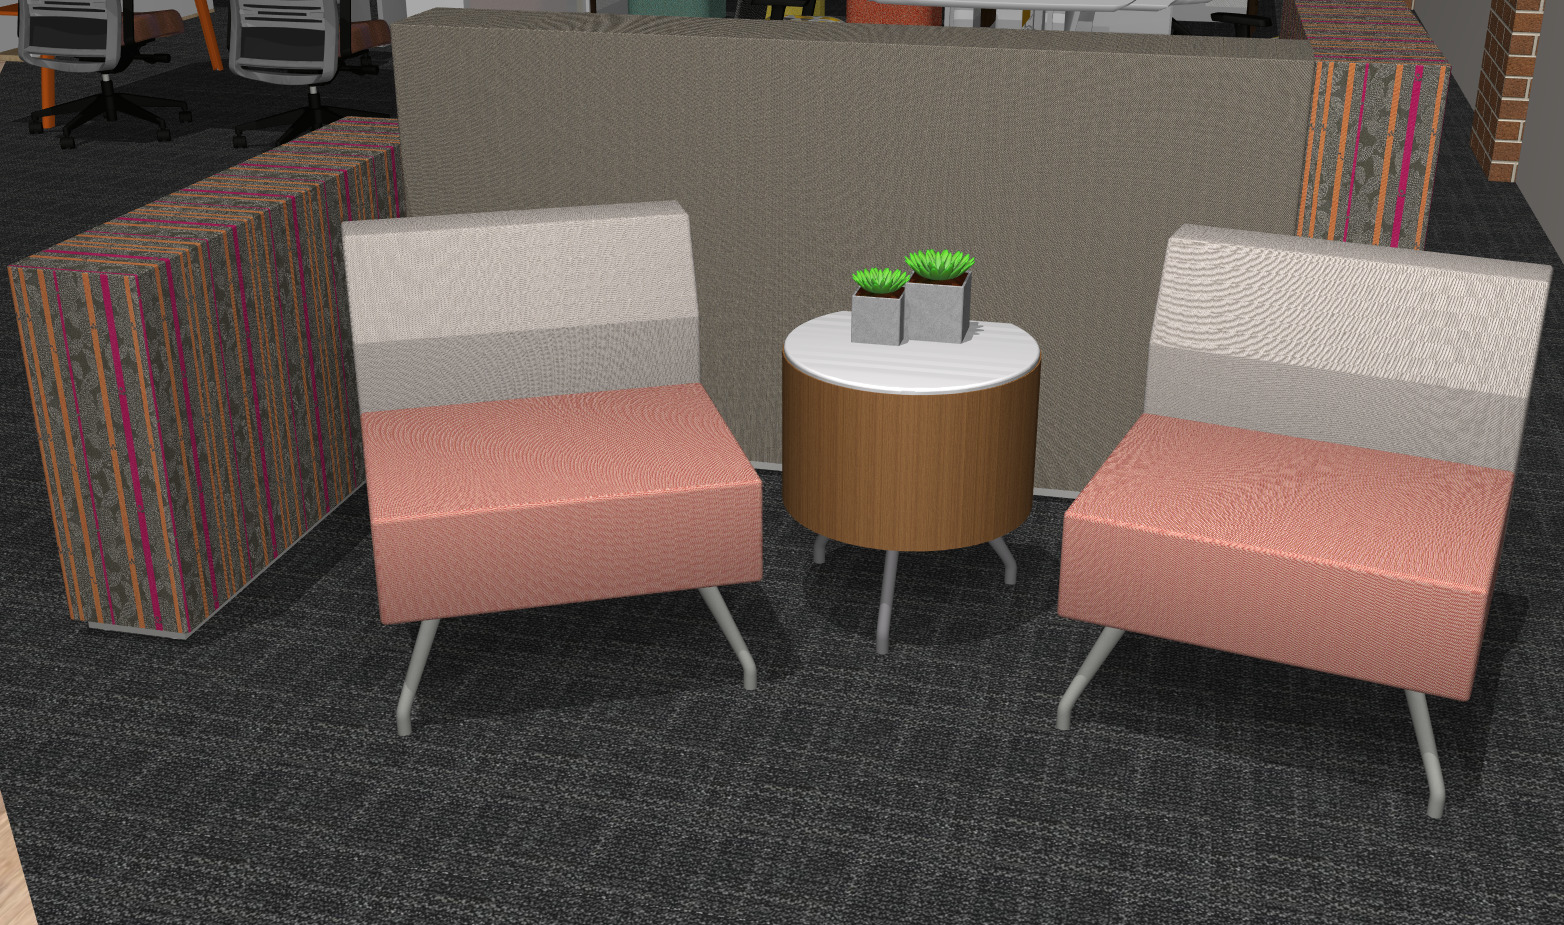 Pairings Entry Approach Fre3dom Office Furniture Kansas City